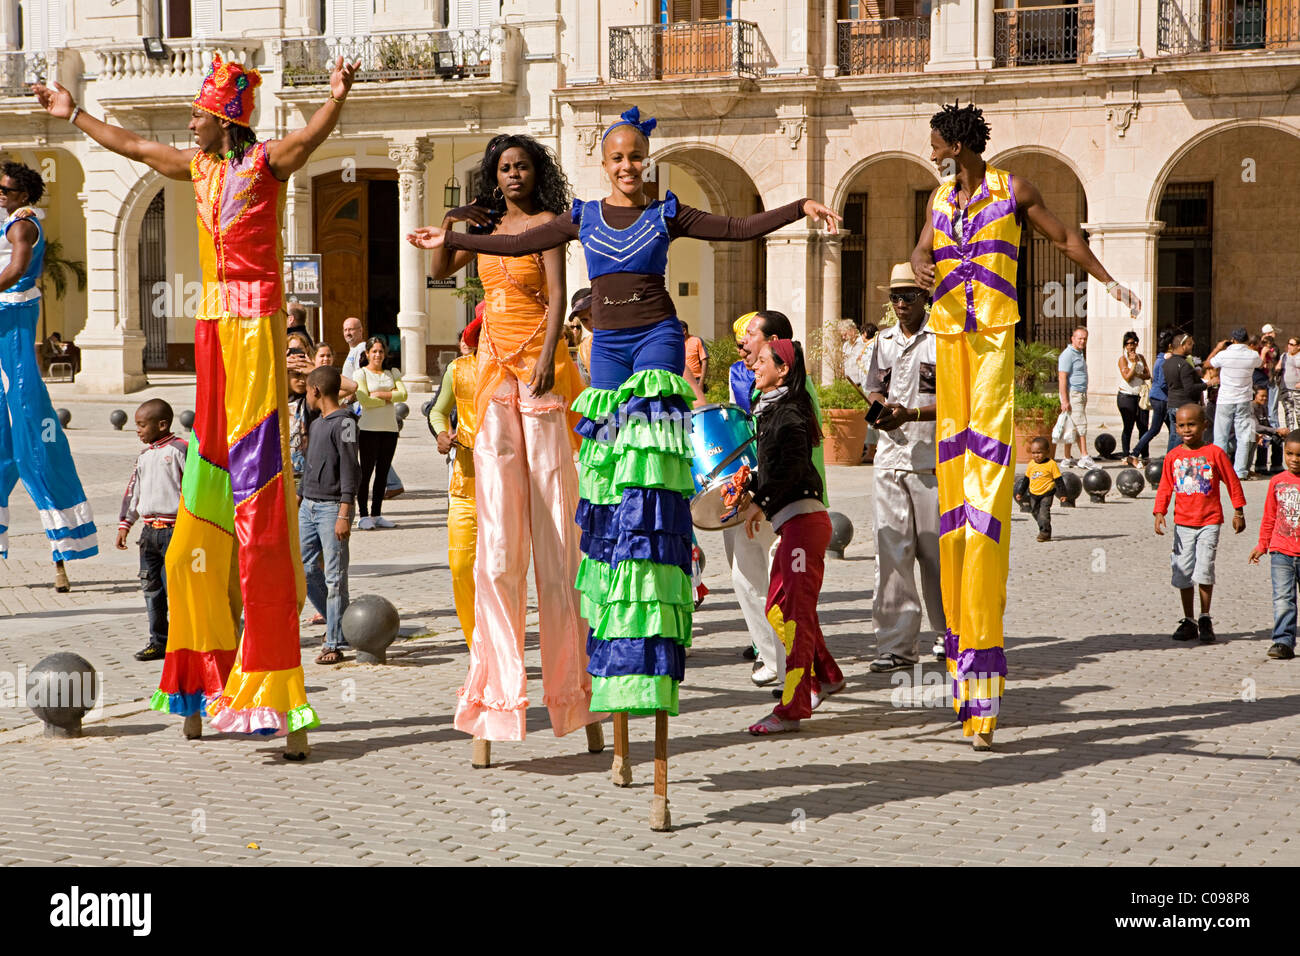 A group of street artist or performers parading on stilts walk through the streets of Havana, Cuba in bright colourful - Stock Image